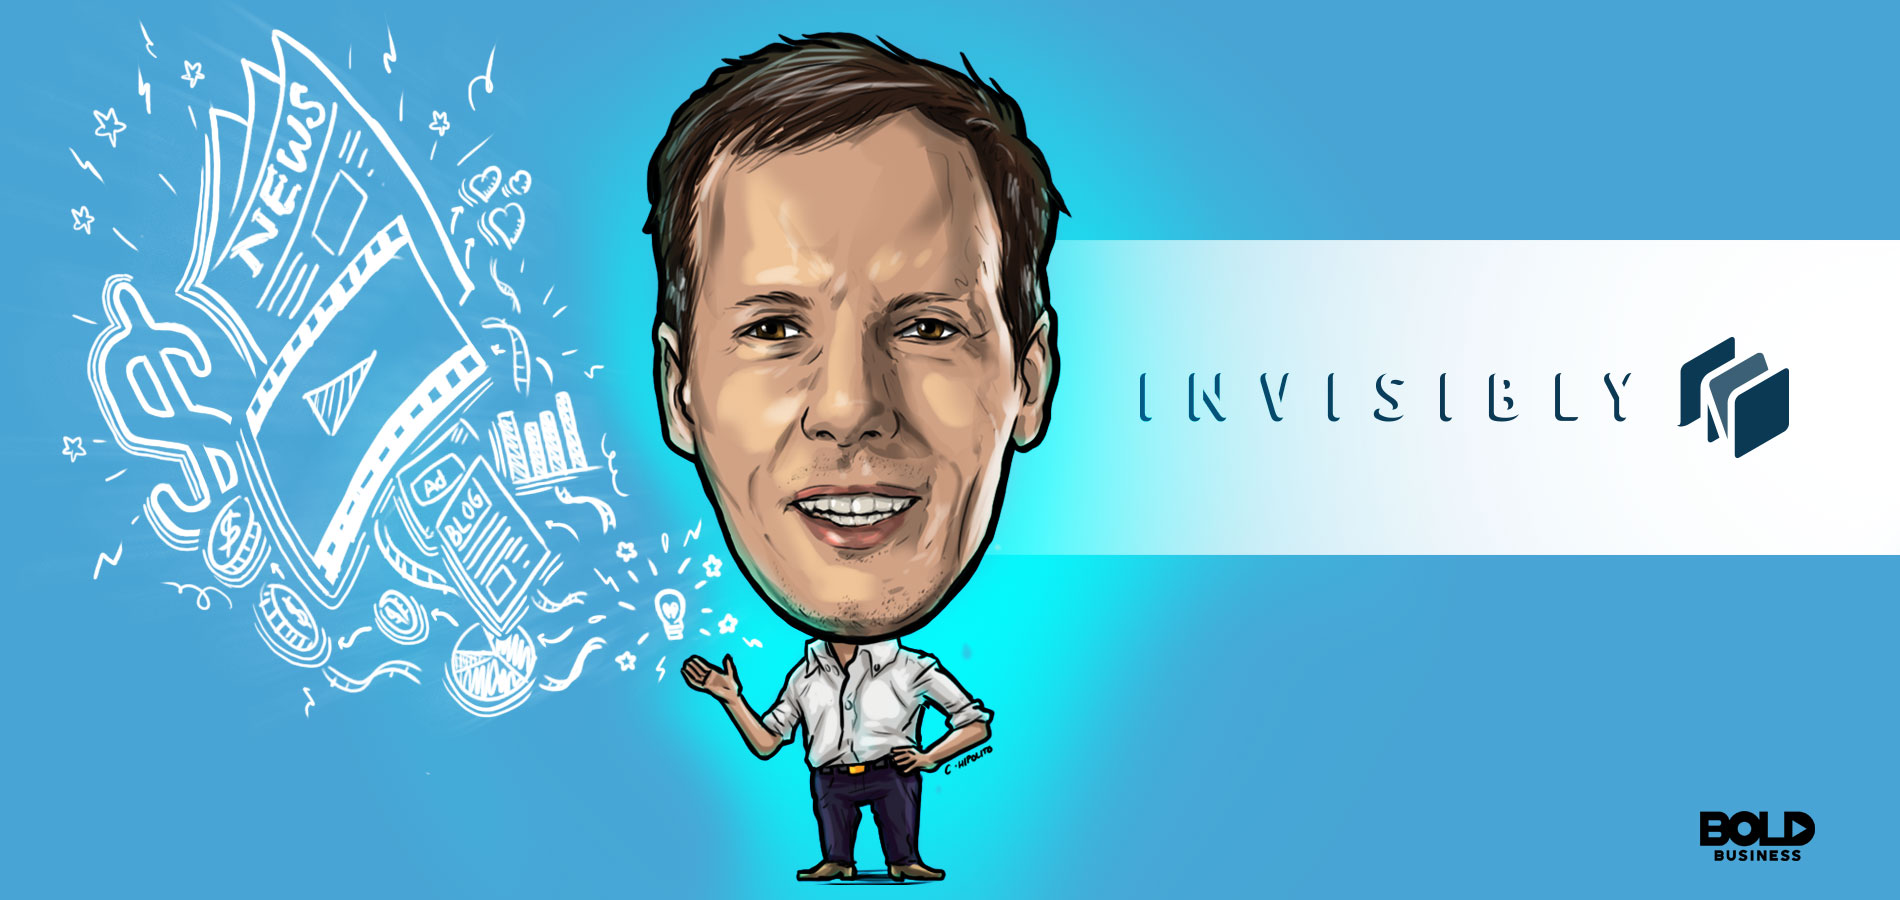 cartoon caricature of Jim McKelvey, founder of Invisibly, posing as the bold leader spotlight of the week